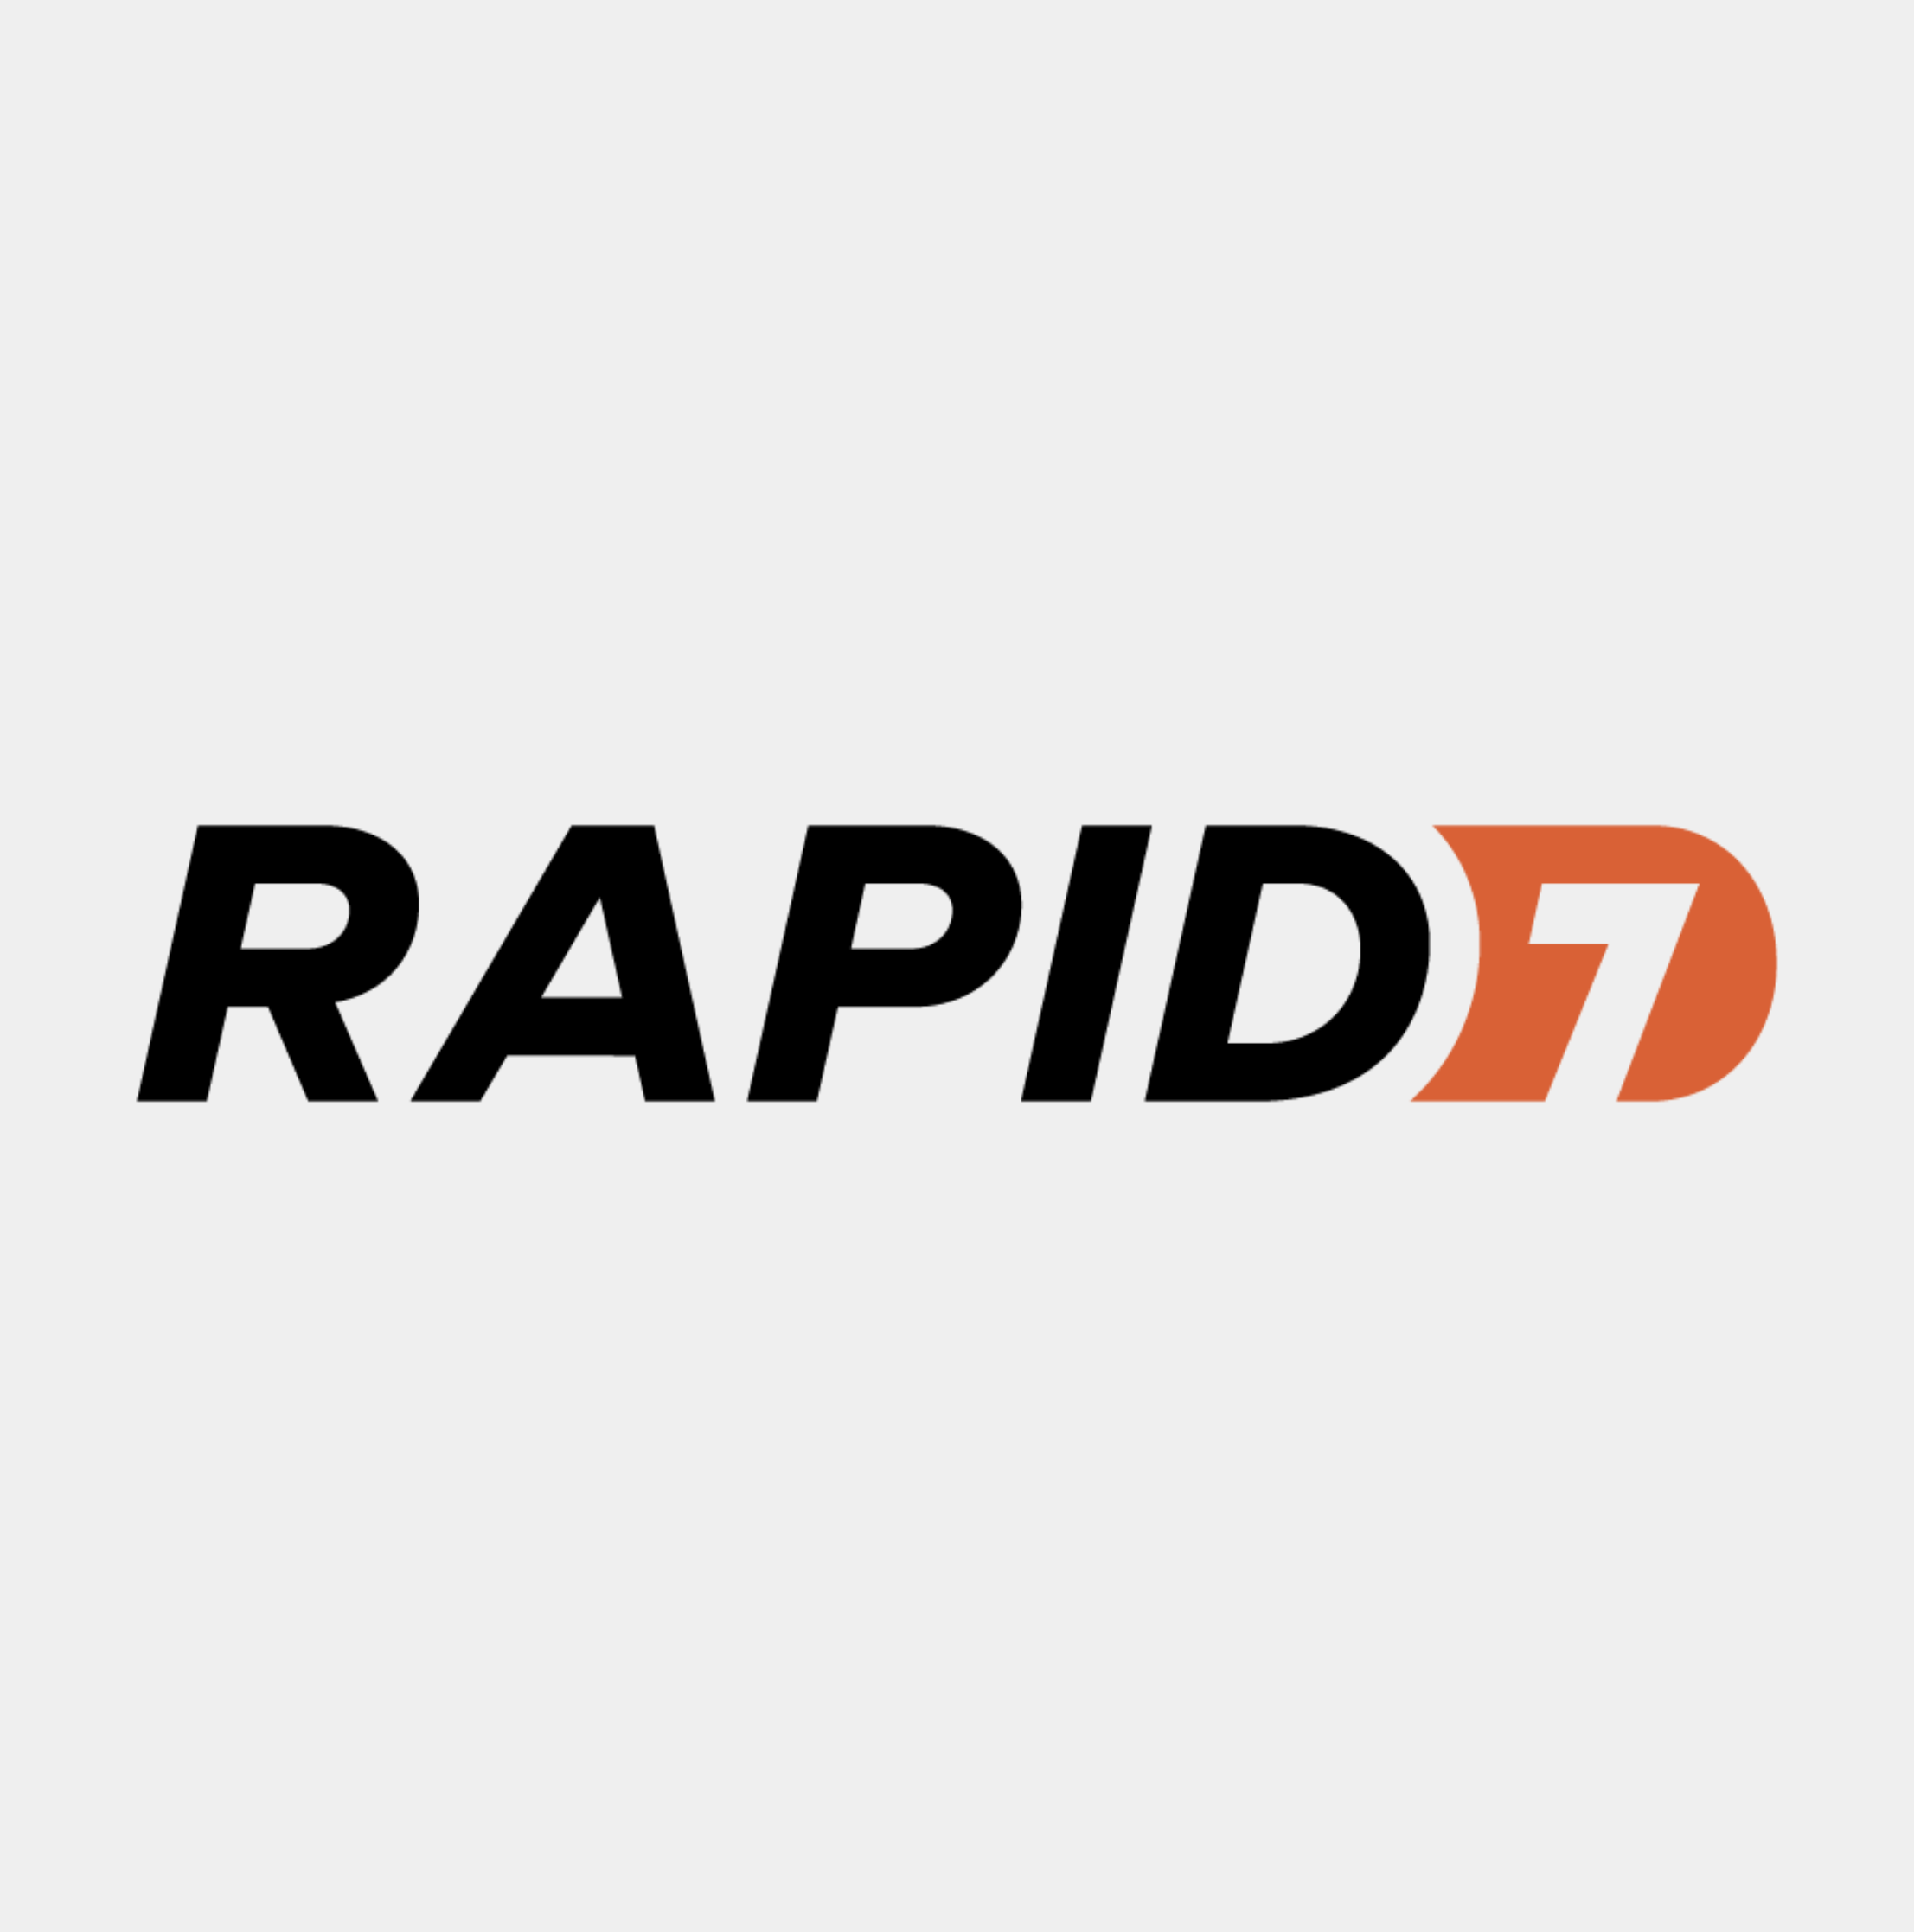 The logo for Rapid7.